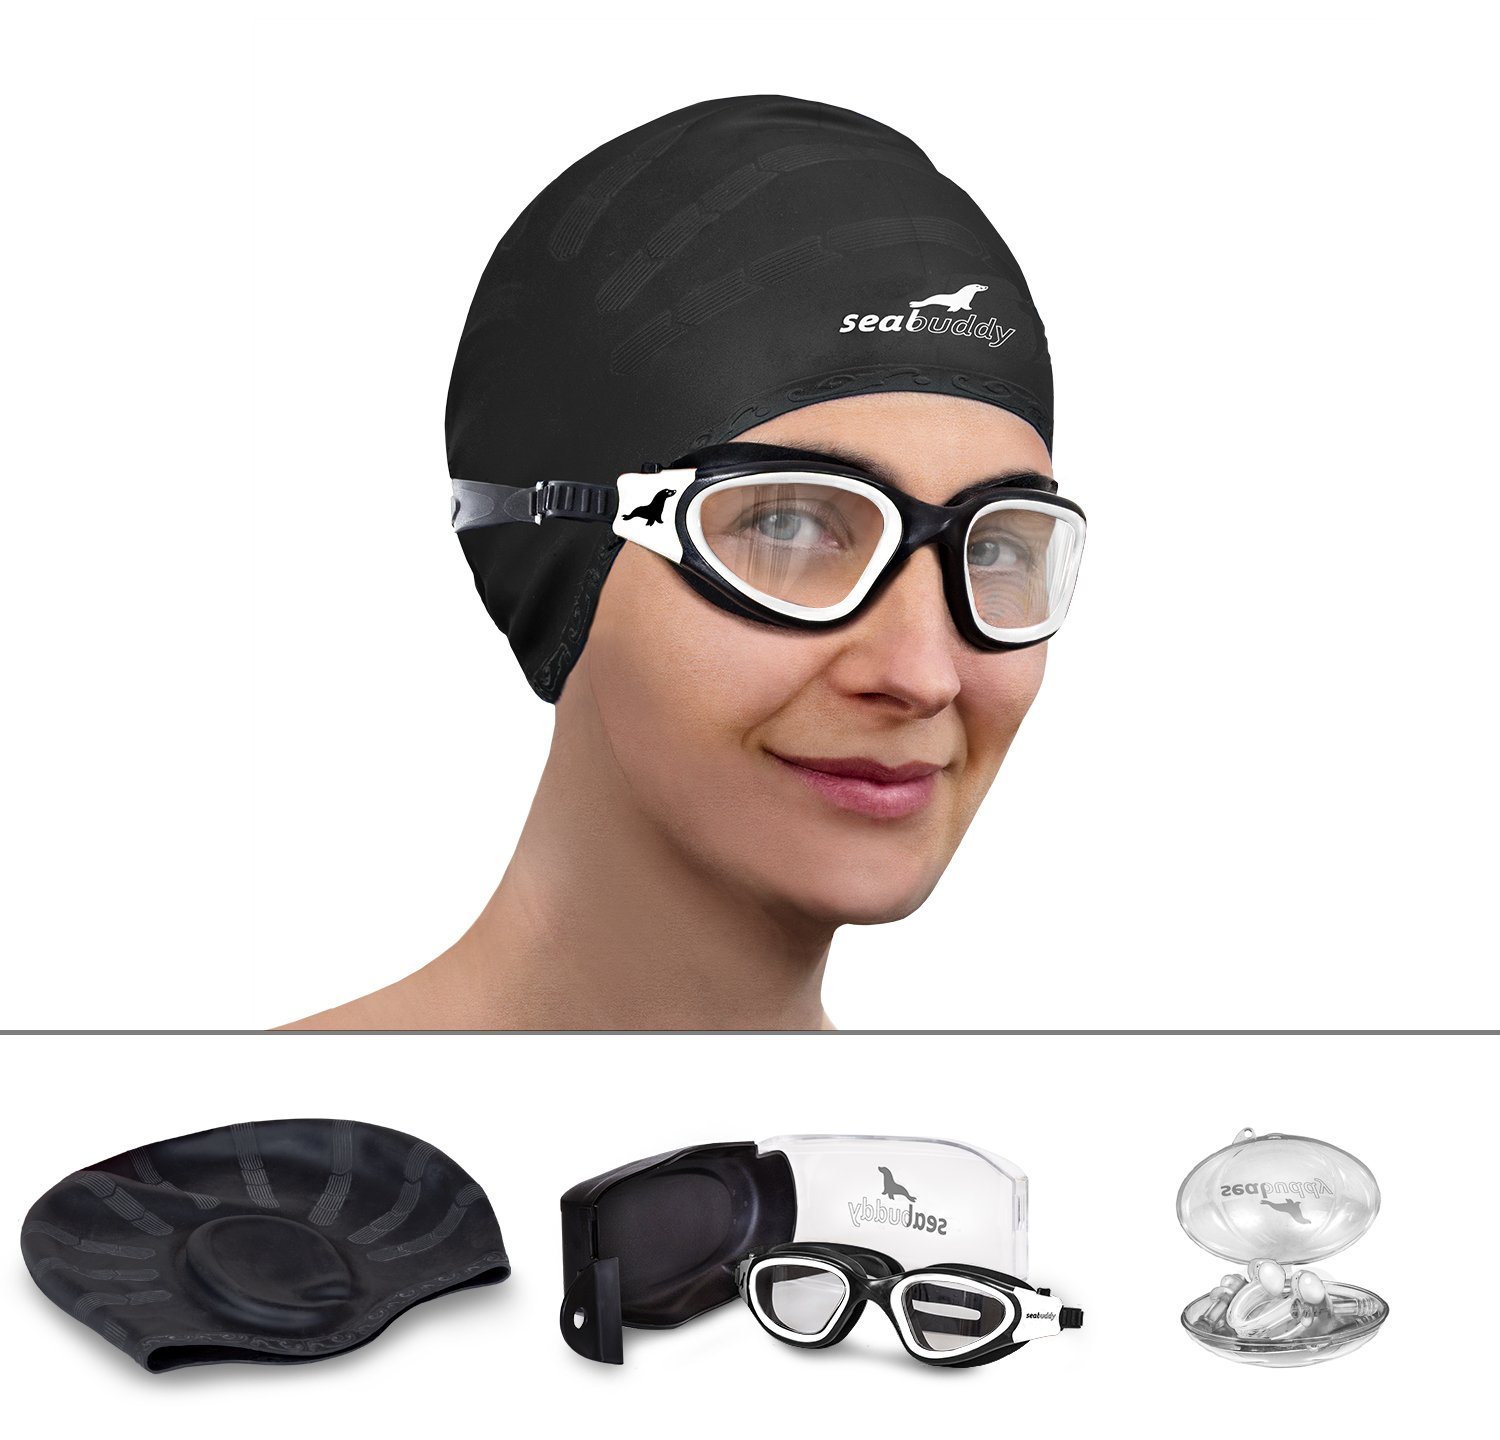 SealBuddy Panoramic Premium Swim Gear - Goggles